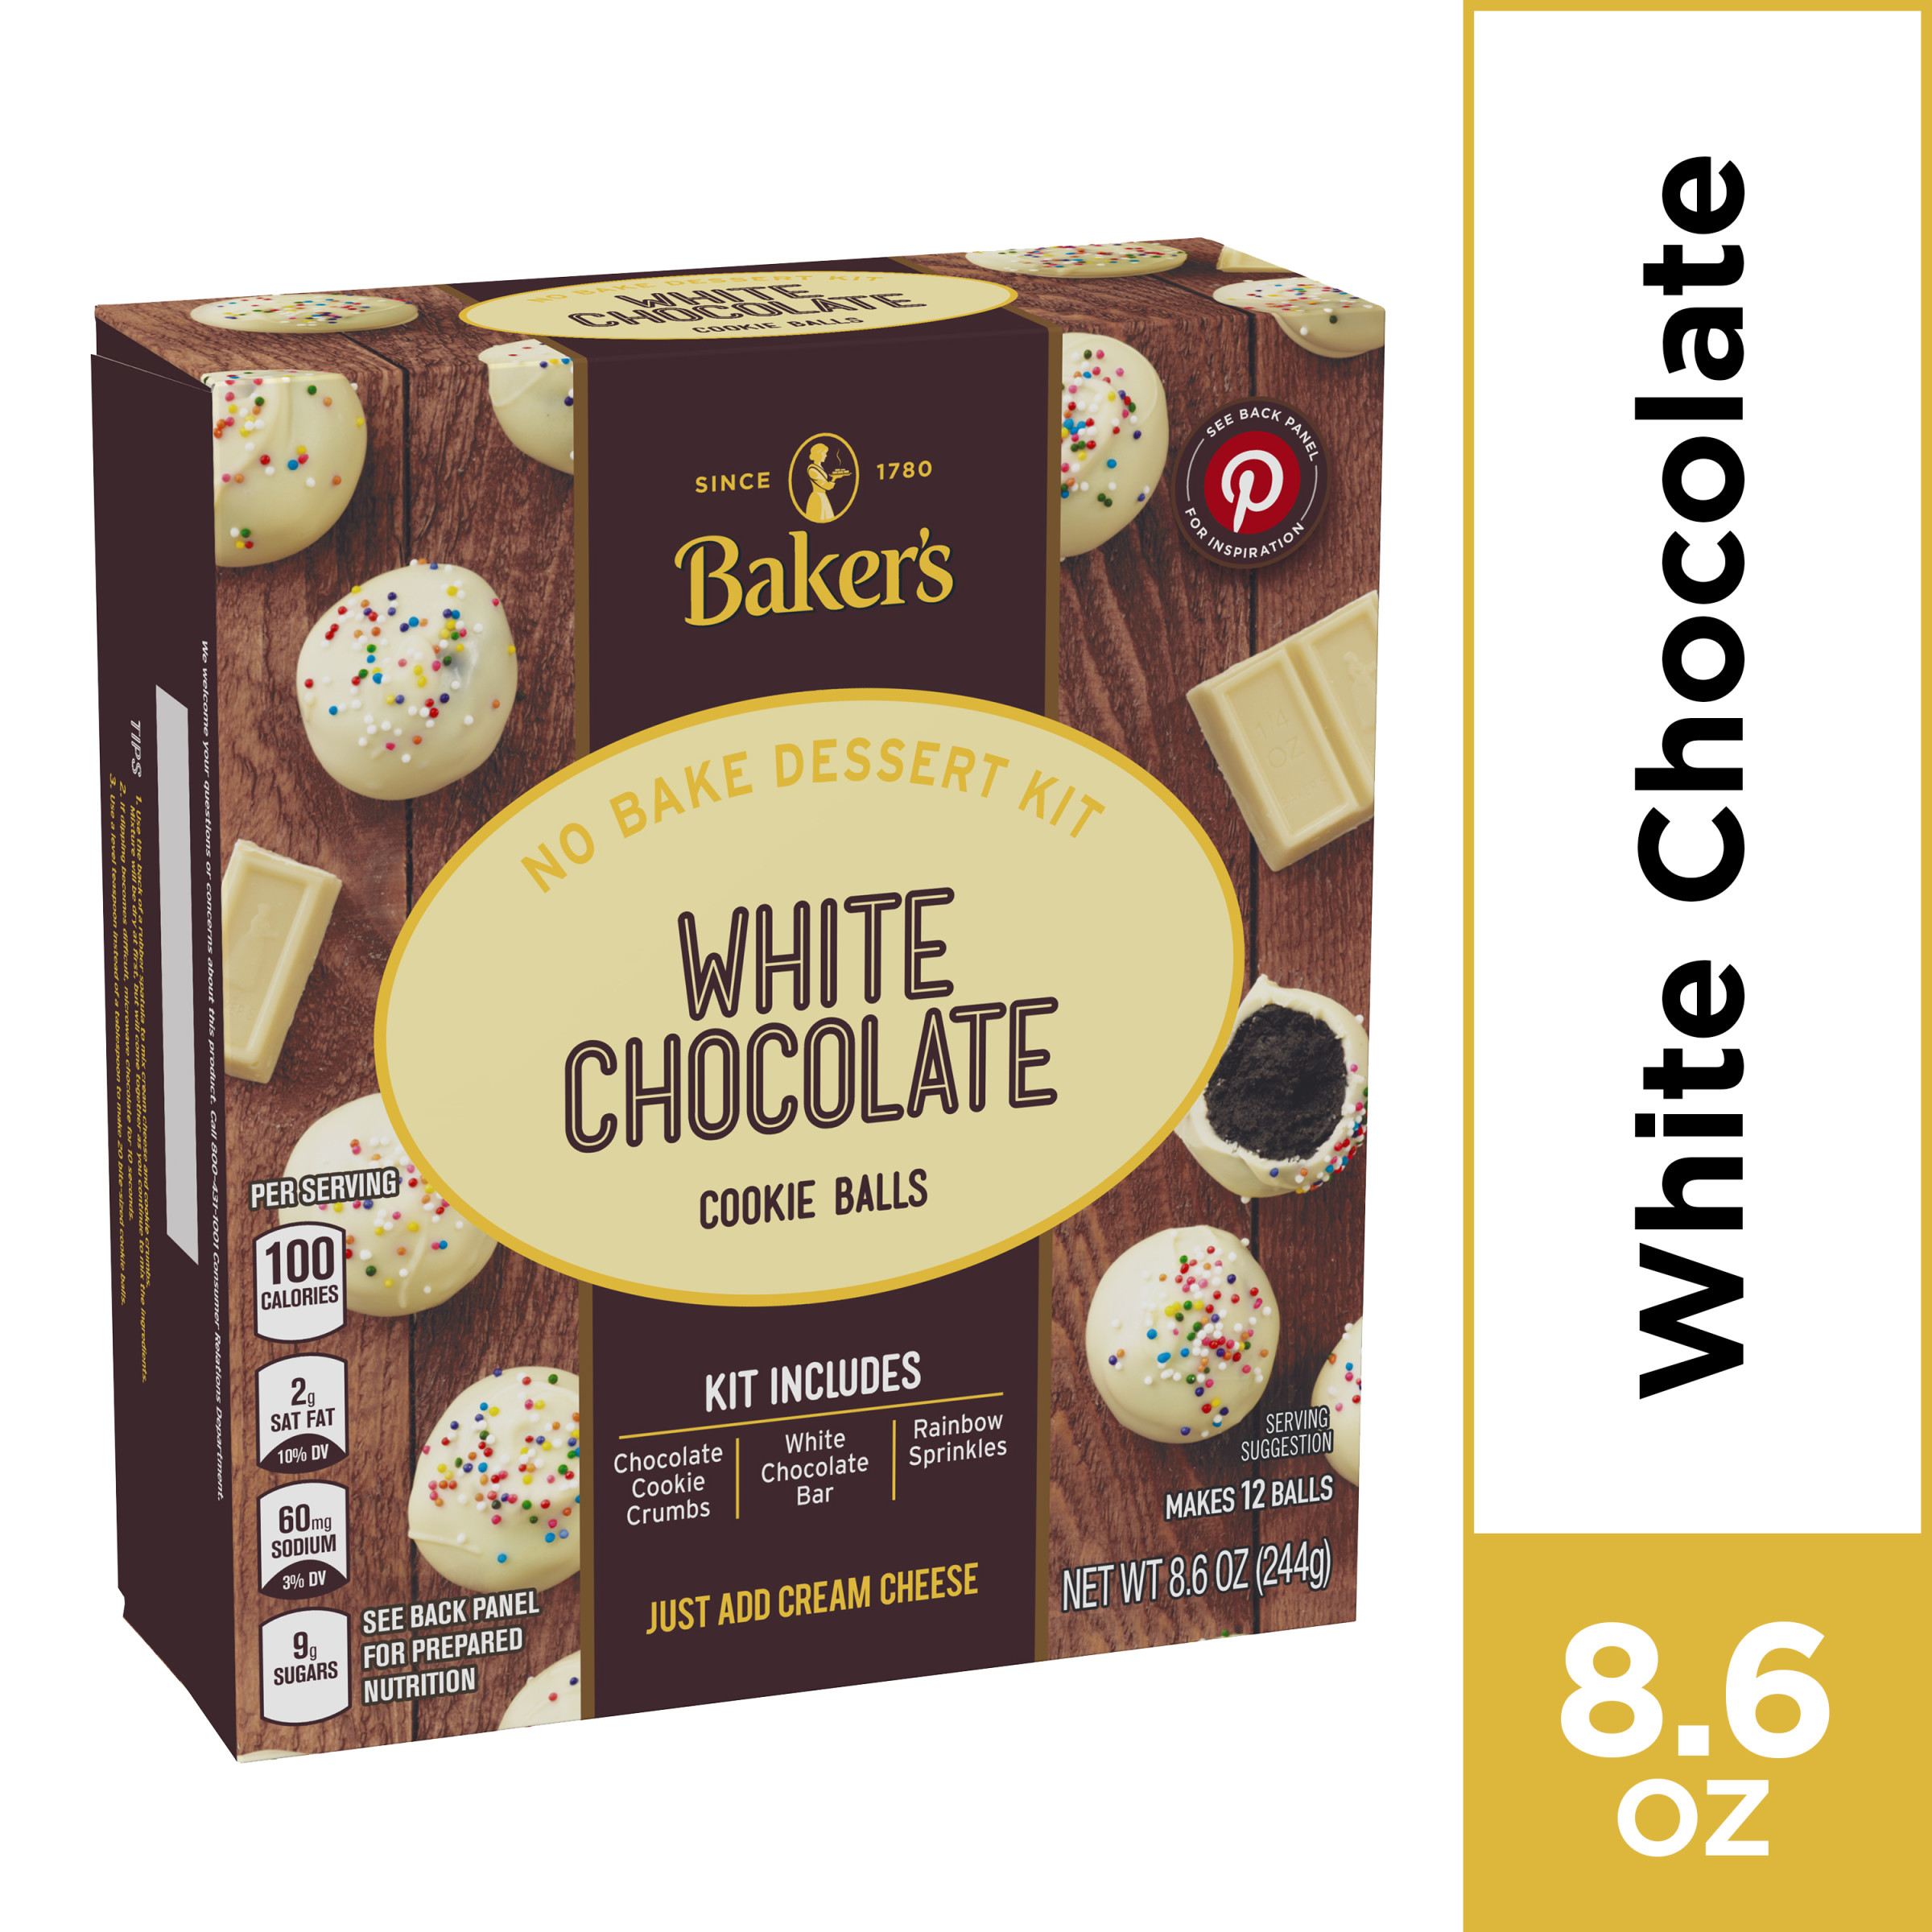 Baker S White Chocolate Cookie Balls No Bake Dessert Kit With Cookie Crumbs White Chocolate Bar Rainbow Sprinkles 8 6 Oz Box Walmart Com Walmart Com